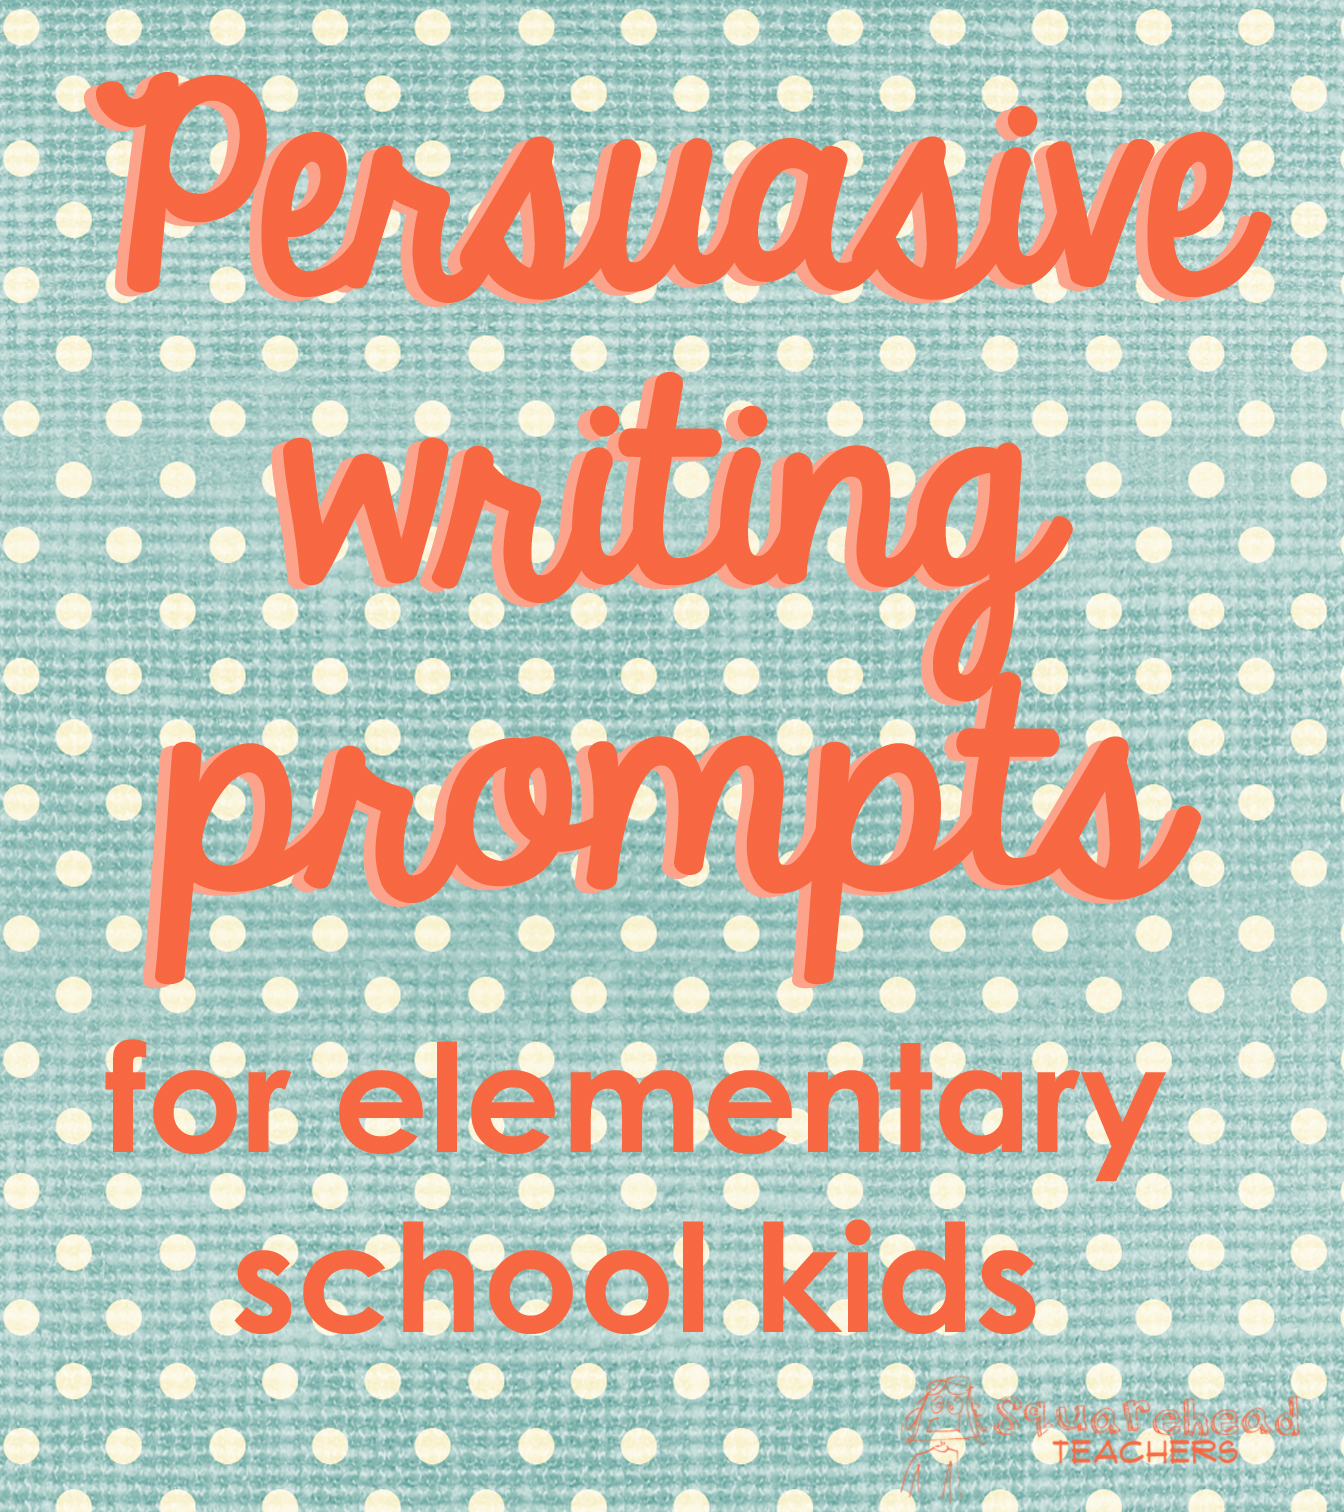 Attrayant Persuasive Writing Prompts For Elementary School Kids